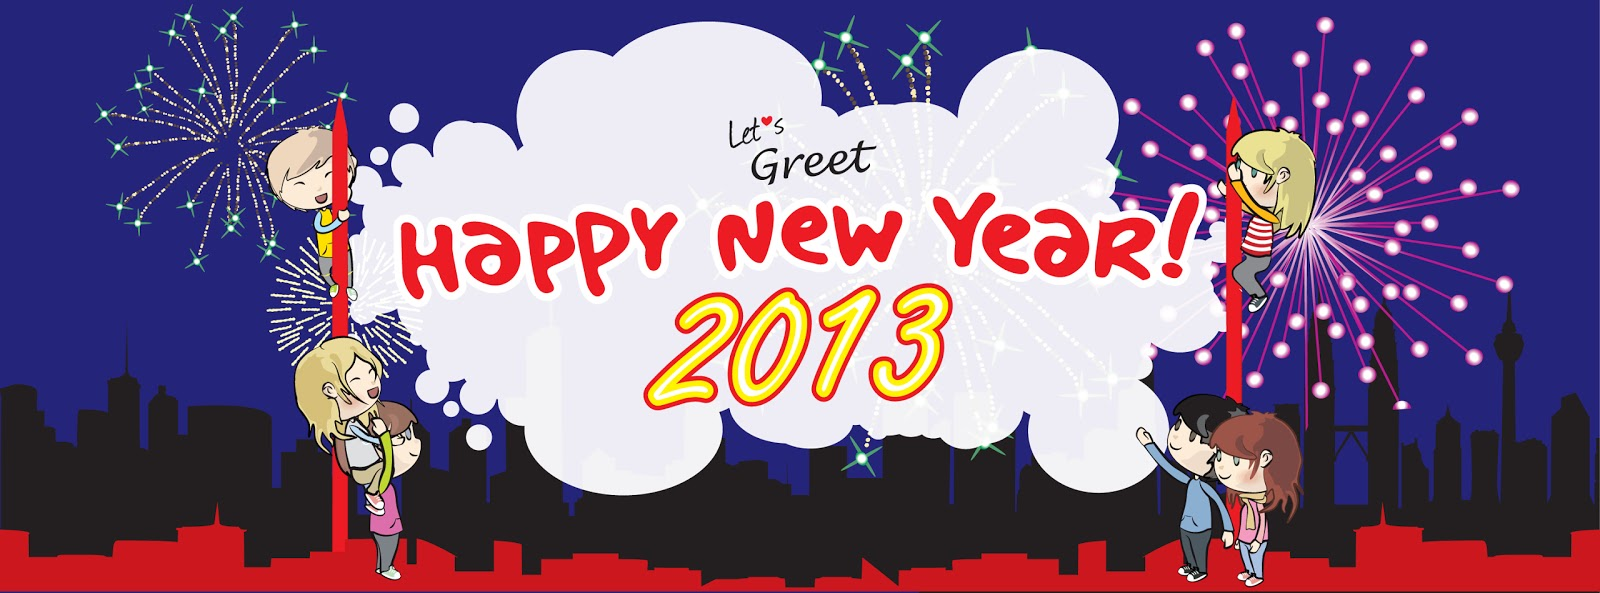 the starting point of 2013 but we are too excited about the brand new year already so heres our facebook banner happy new year in advance everybody